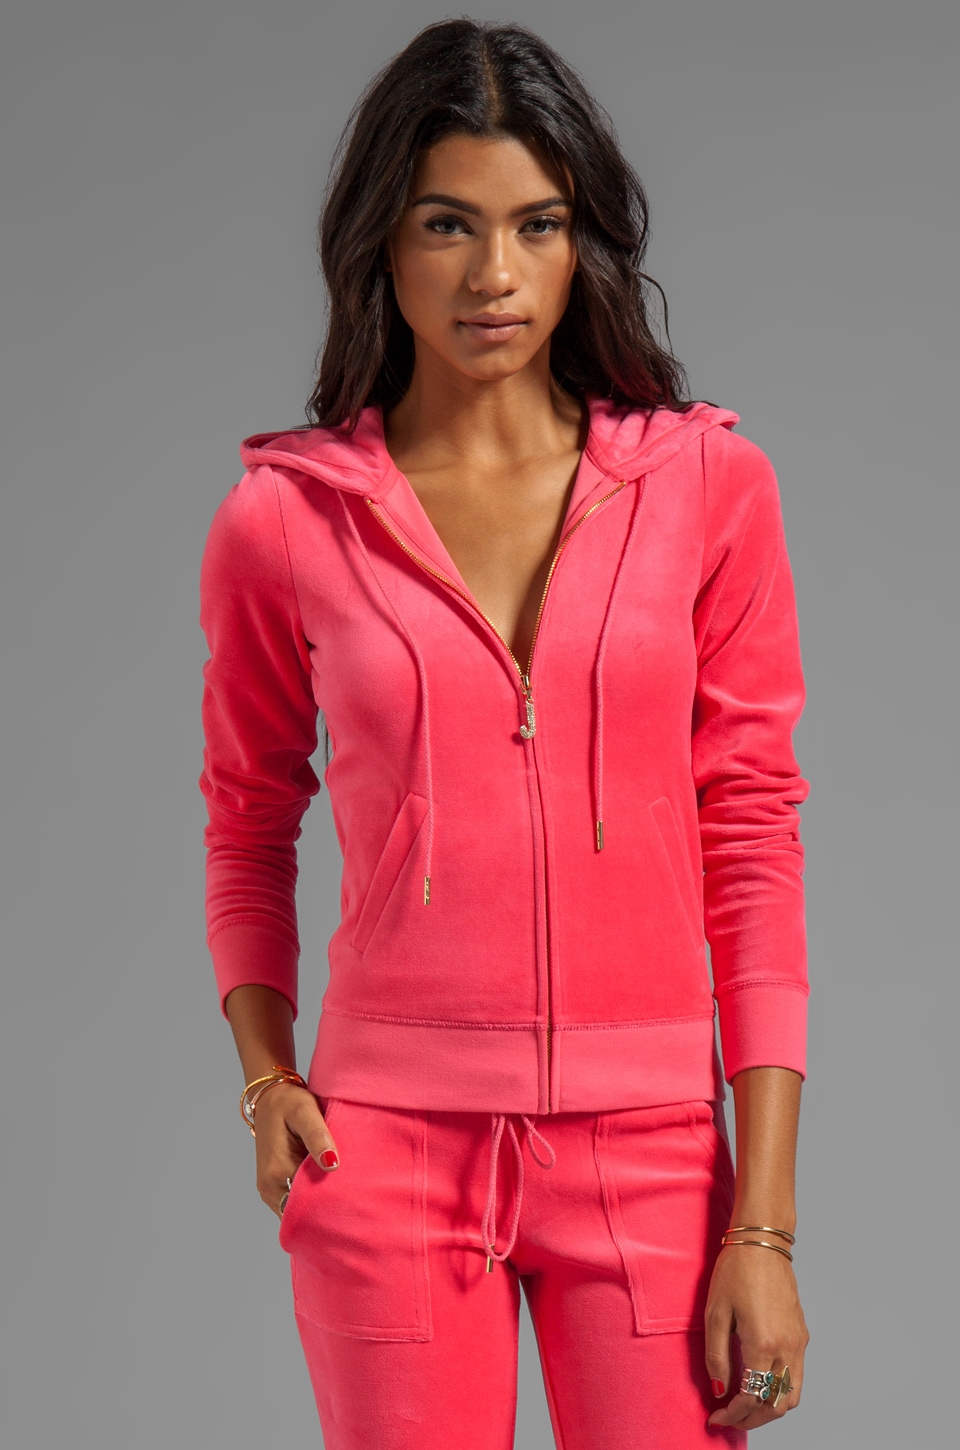 Juicy Couture Velour J Bling Hoodie in Frolic